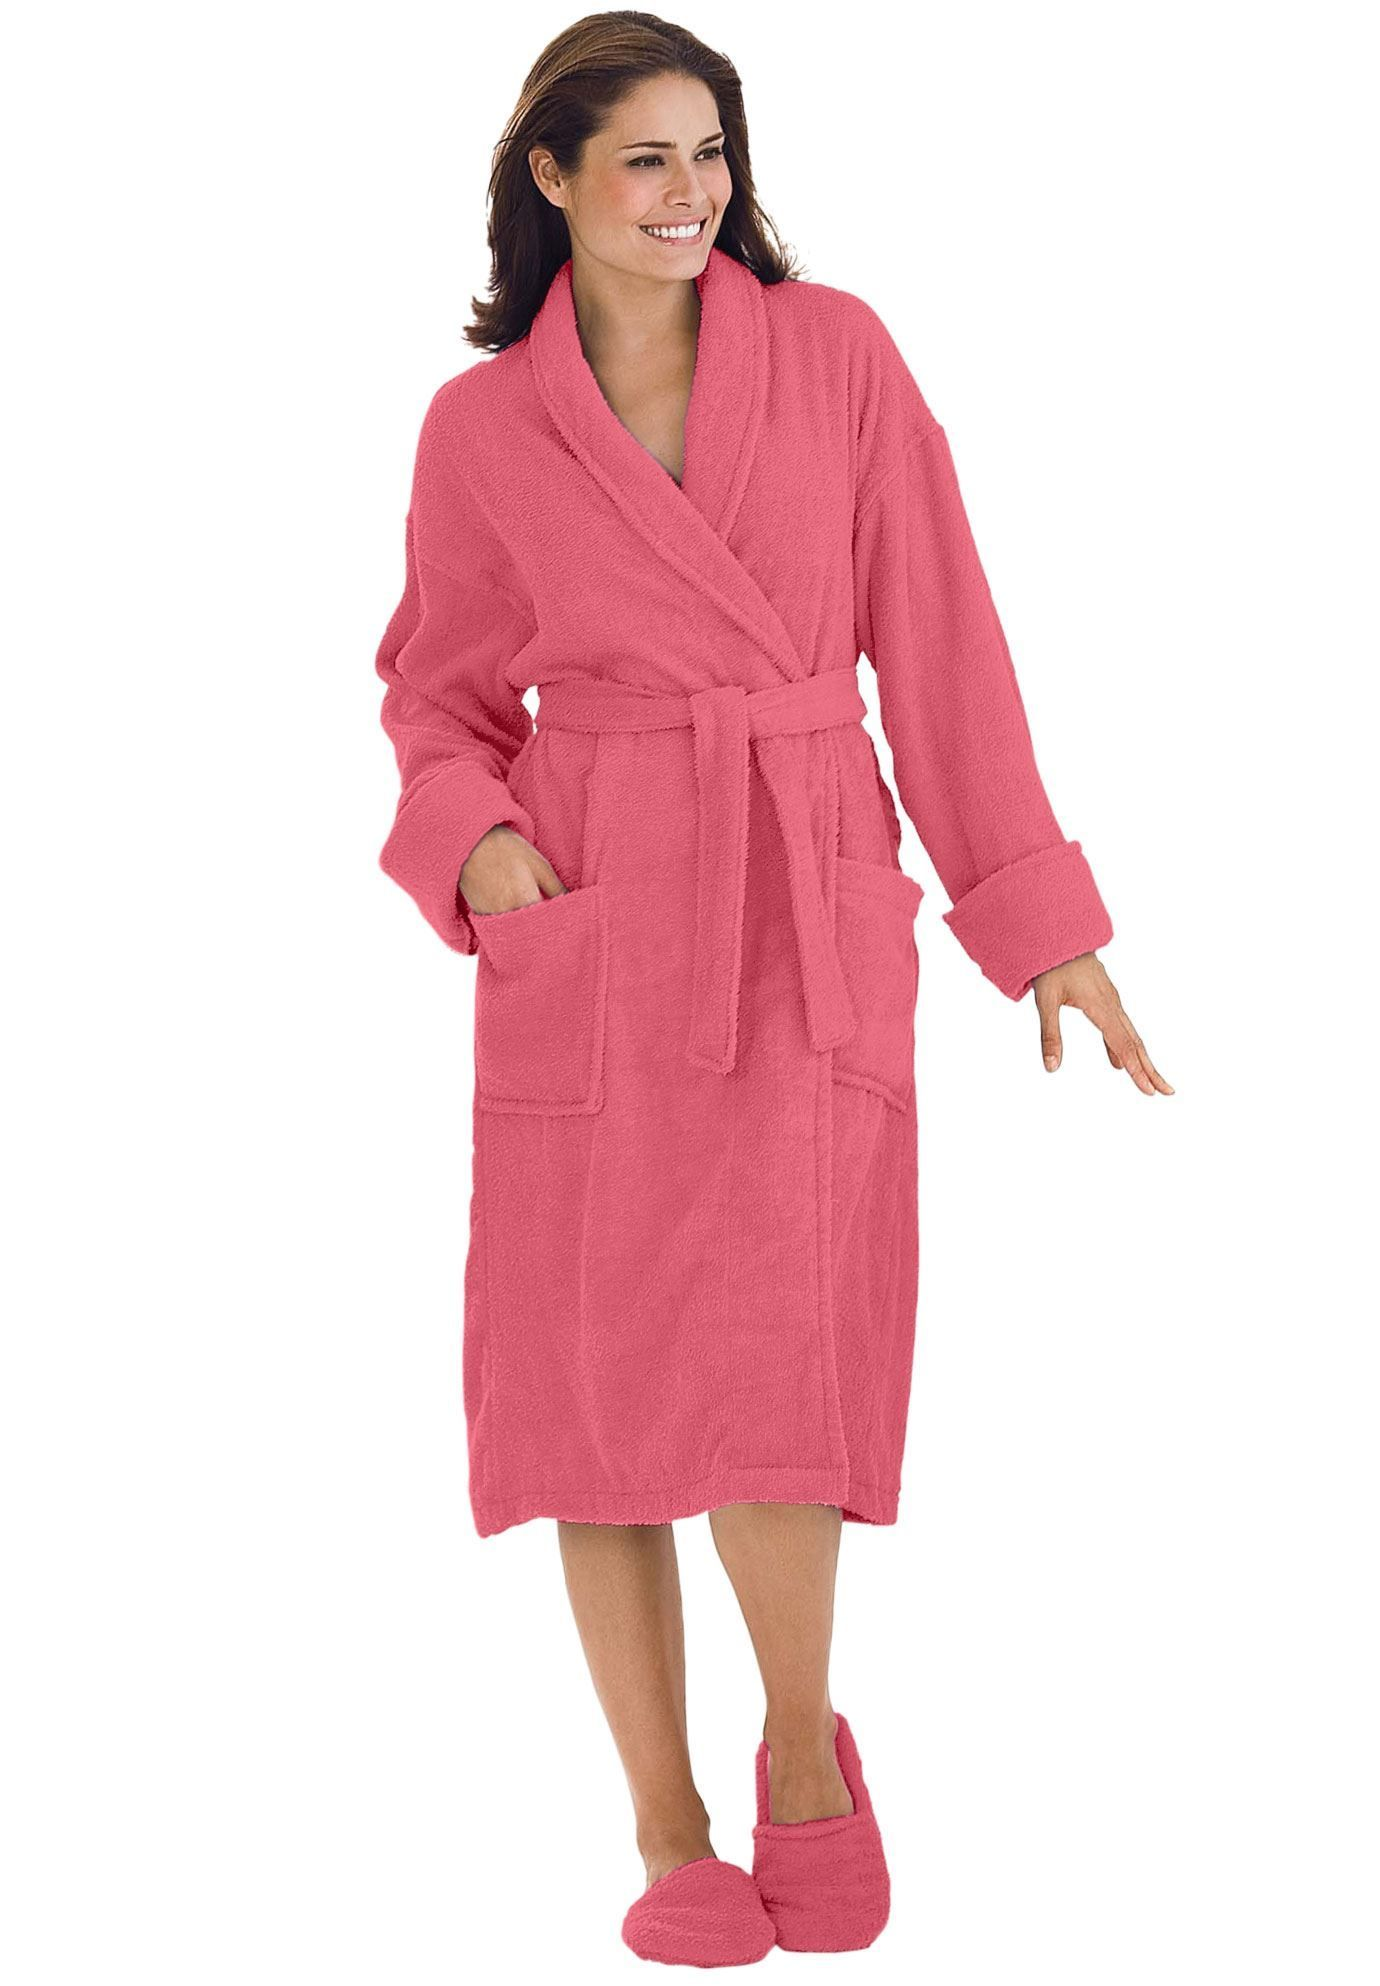 7f1f0d9b28 Personalized Short Terry Robe with FREE Slippers - Women s Plus Size  Clothing